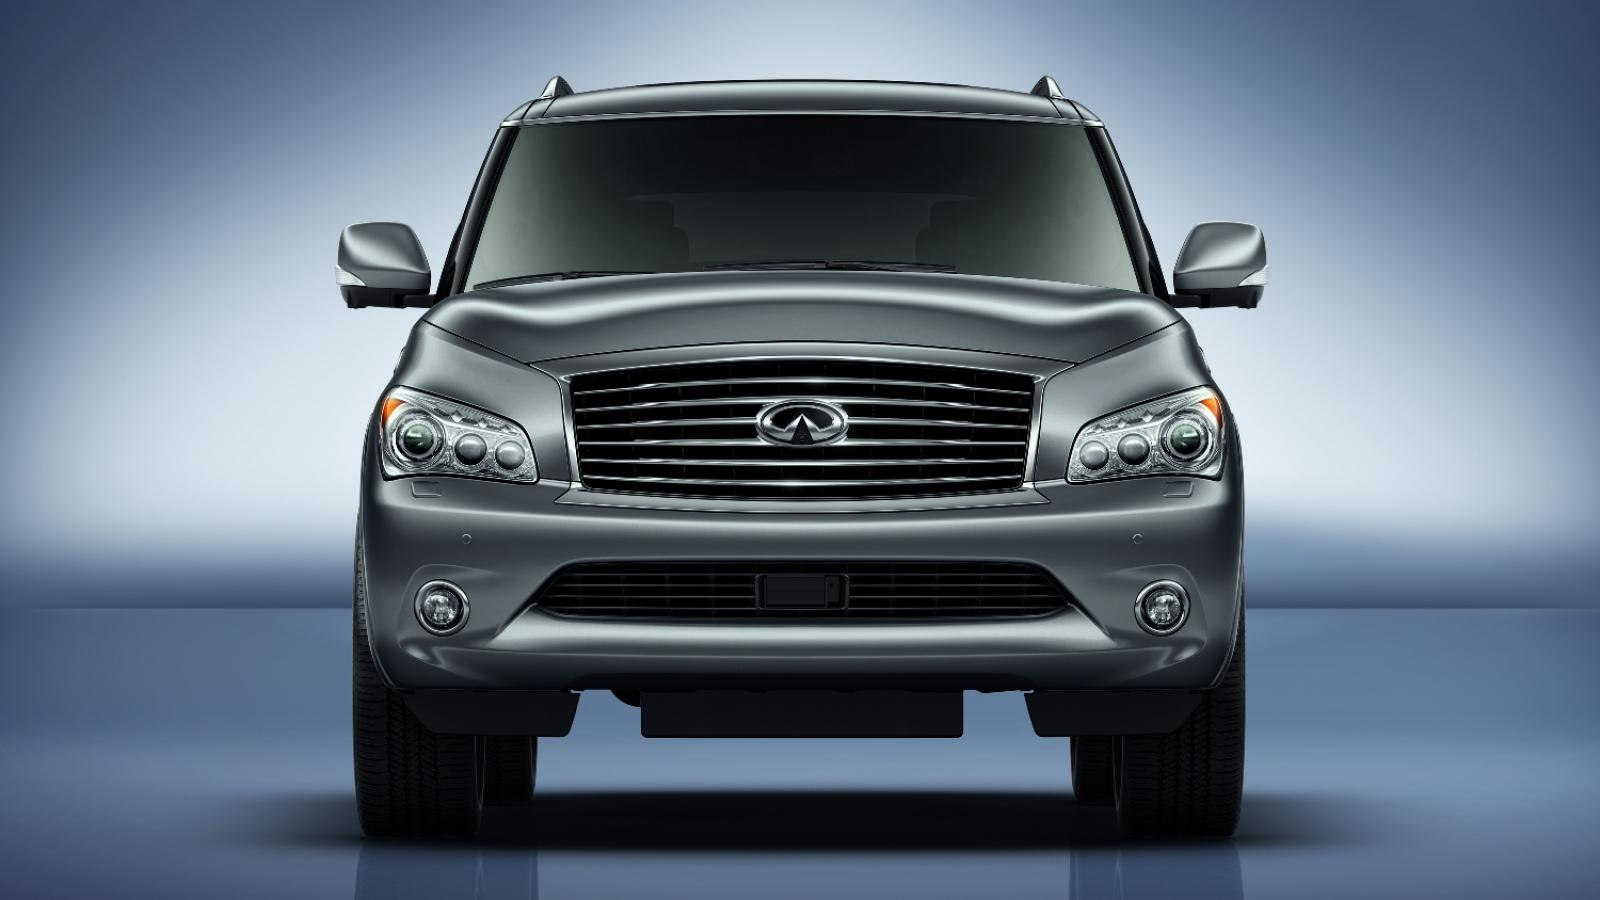 used 2014 infiniti qx80 for sale pricing features 2018 2019 2020 ford cars. Black Bedroom Furniture Sets. Home Design Ideas